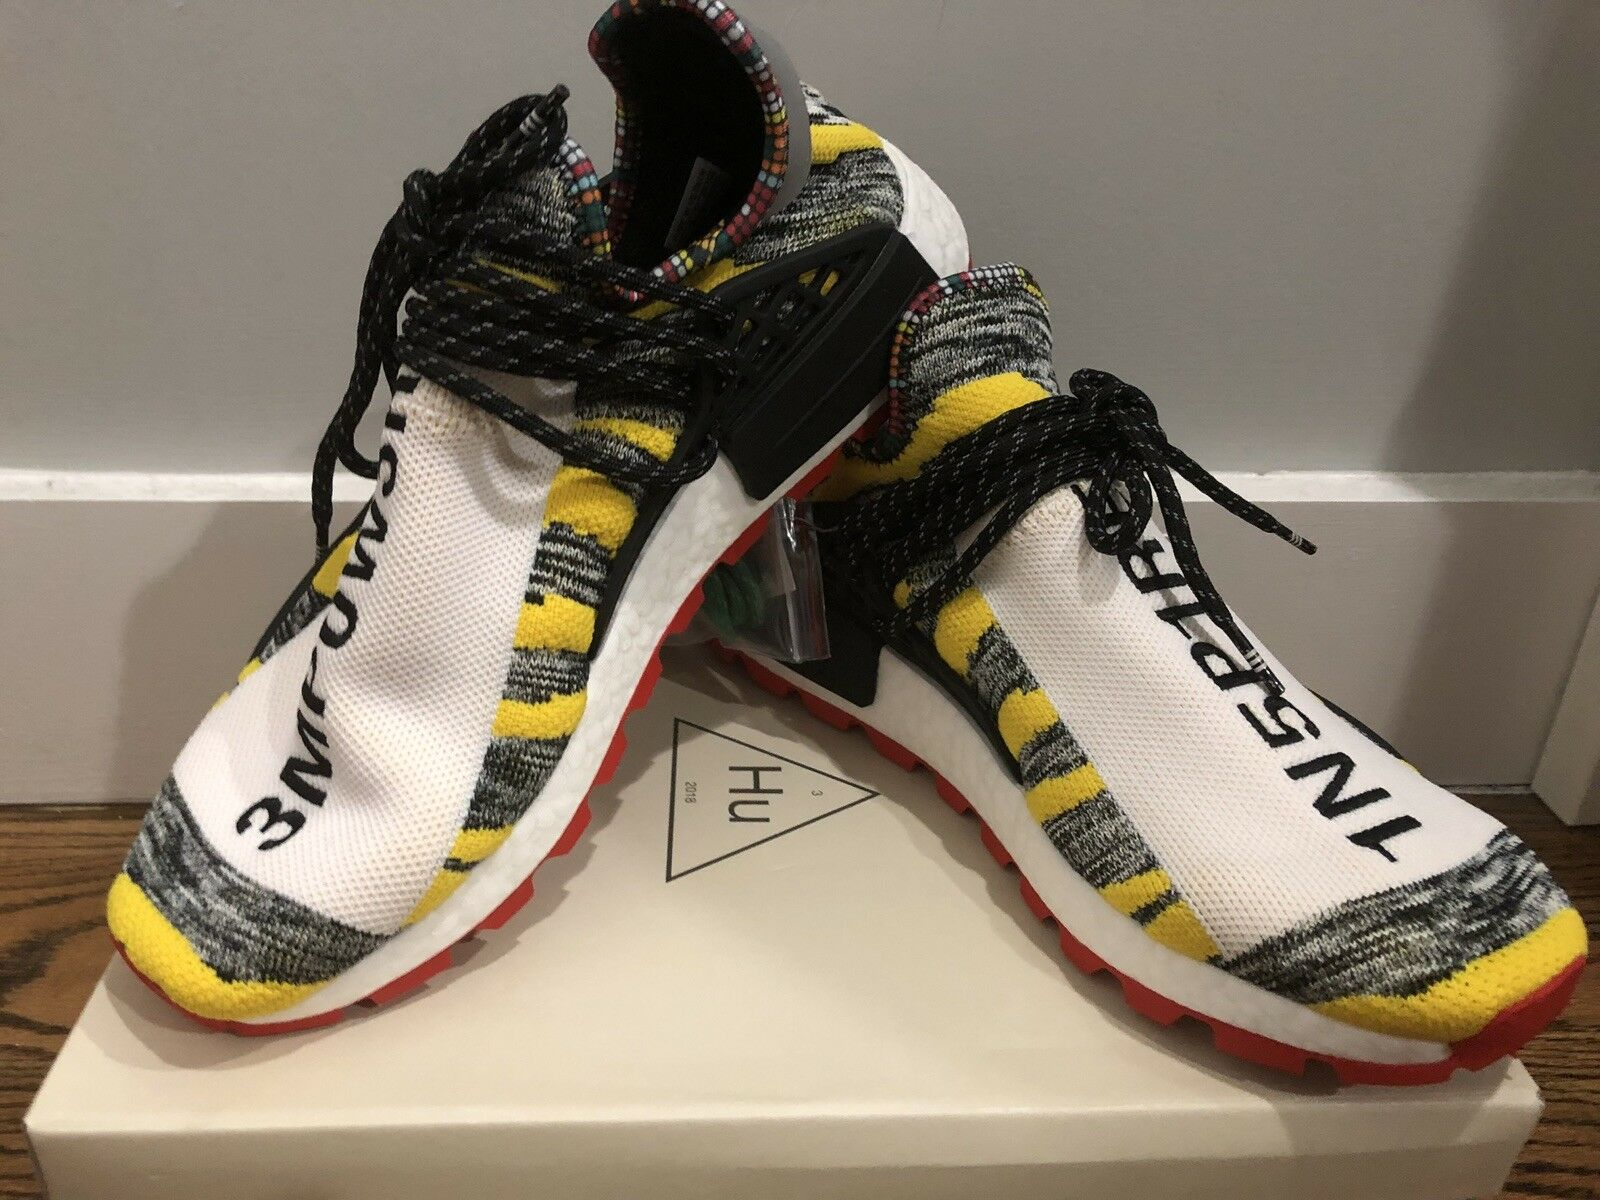 Adidas Pharrell Solar Hu NMD (Black Red Yellow) SOLD OUT ONLINE